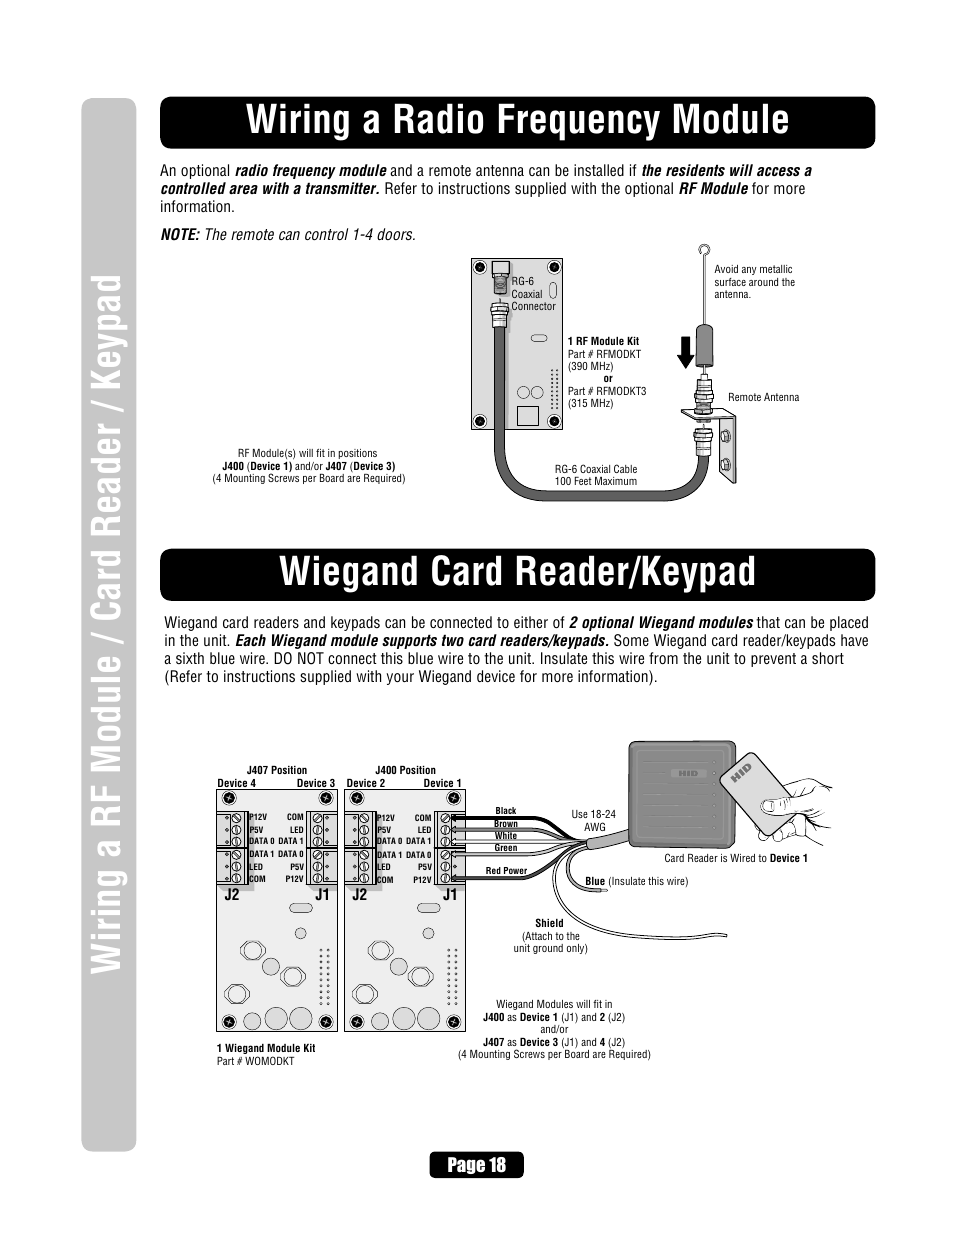 Wiring A Radio Frequency Module Wiegand Card Reader Keypad Page 18 Chamberlain Diagram J1